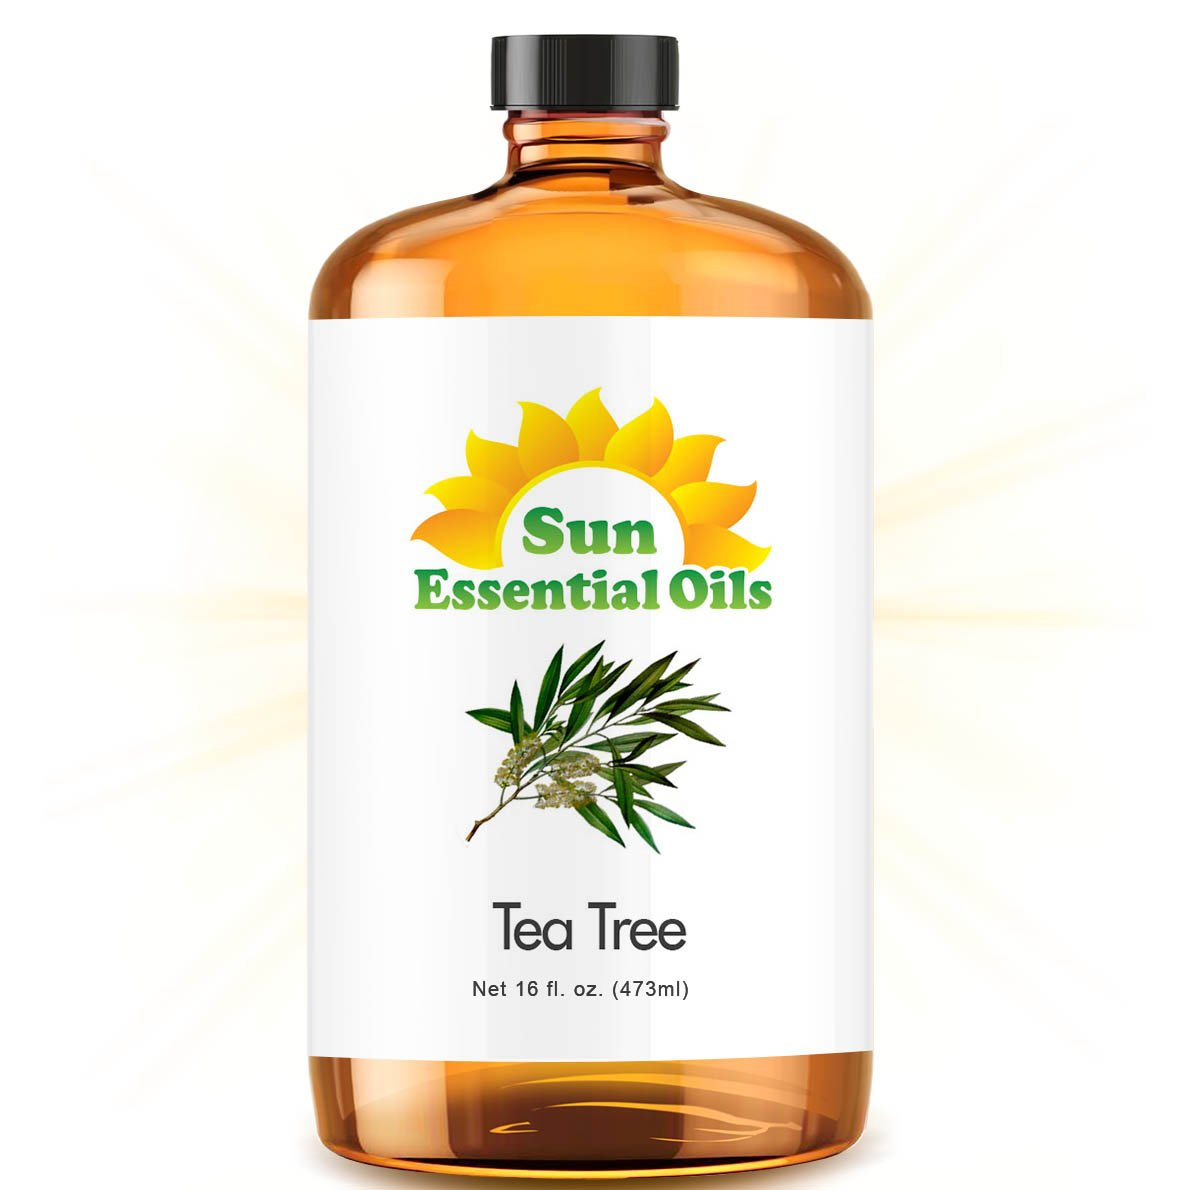 Bulk Tea Tree Oil - Ultra 16 Ounce - 100% Pure Essential Oil (Best 16 fl oz / 472ml) - Sun Essential